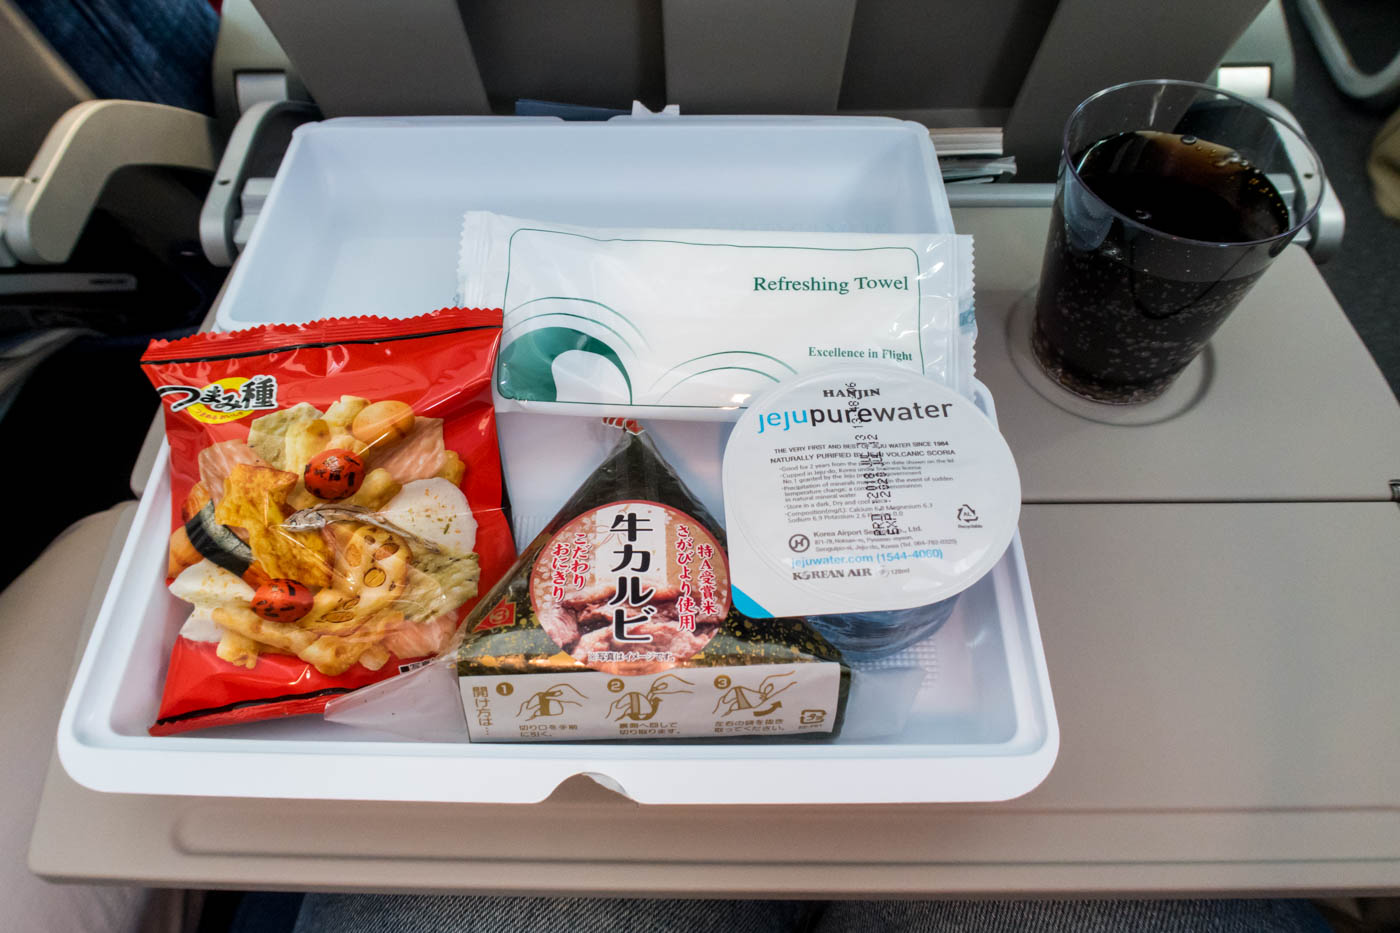 Korean Air Shorthaul Economy Class Meal